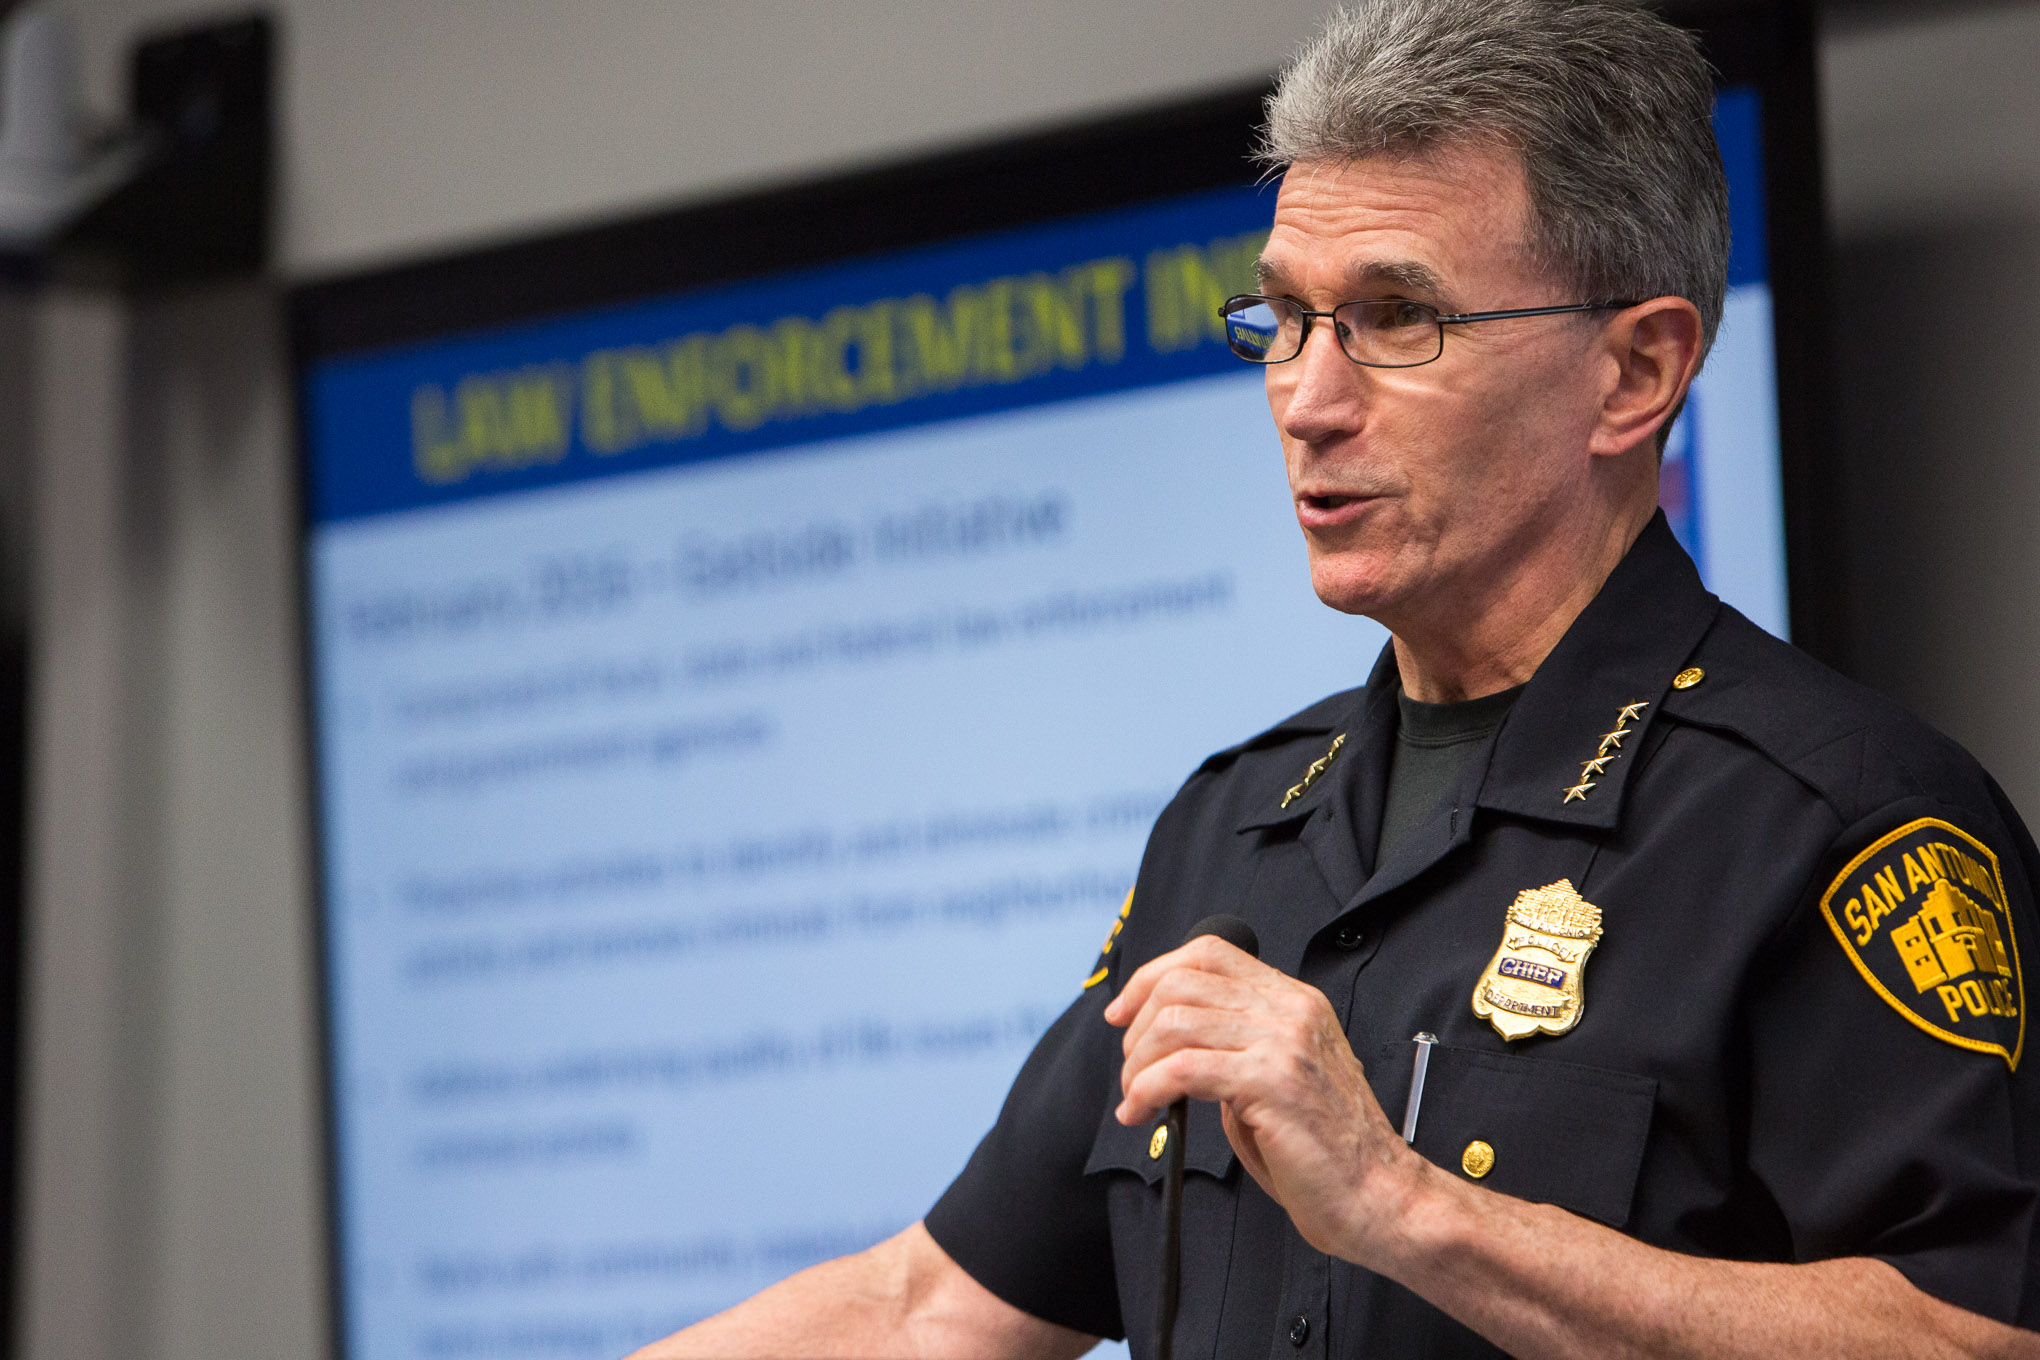 San Antonio Police Department Chief William McManus gives an update on crime in the Eastside Promise Zone. Photo by Scott Ball.